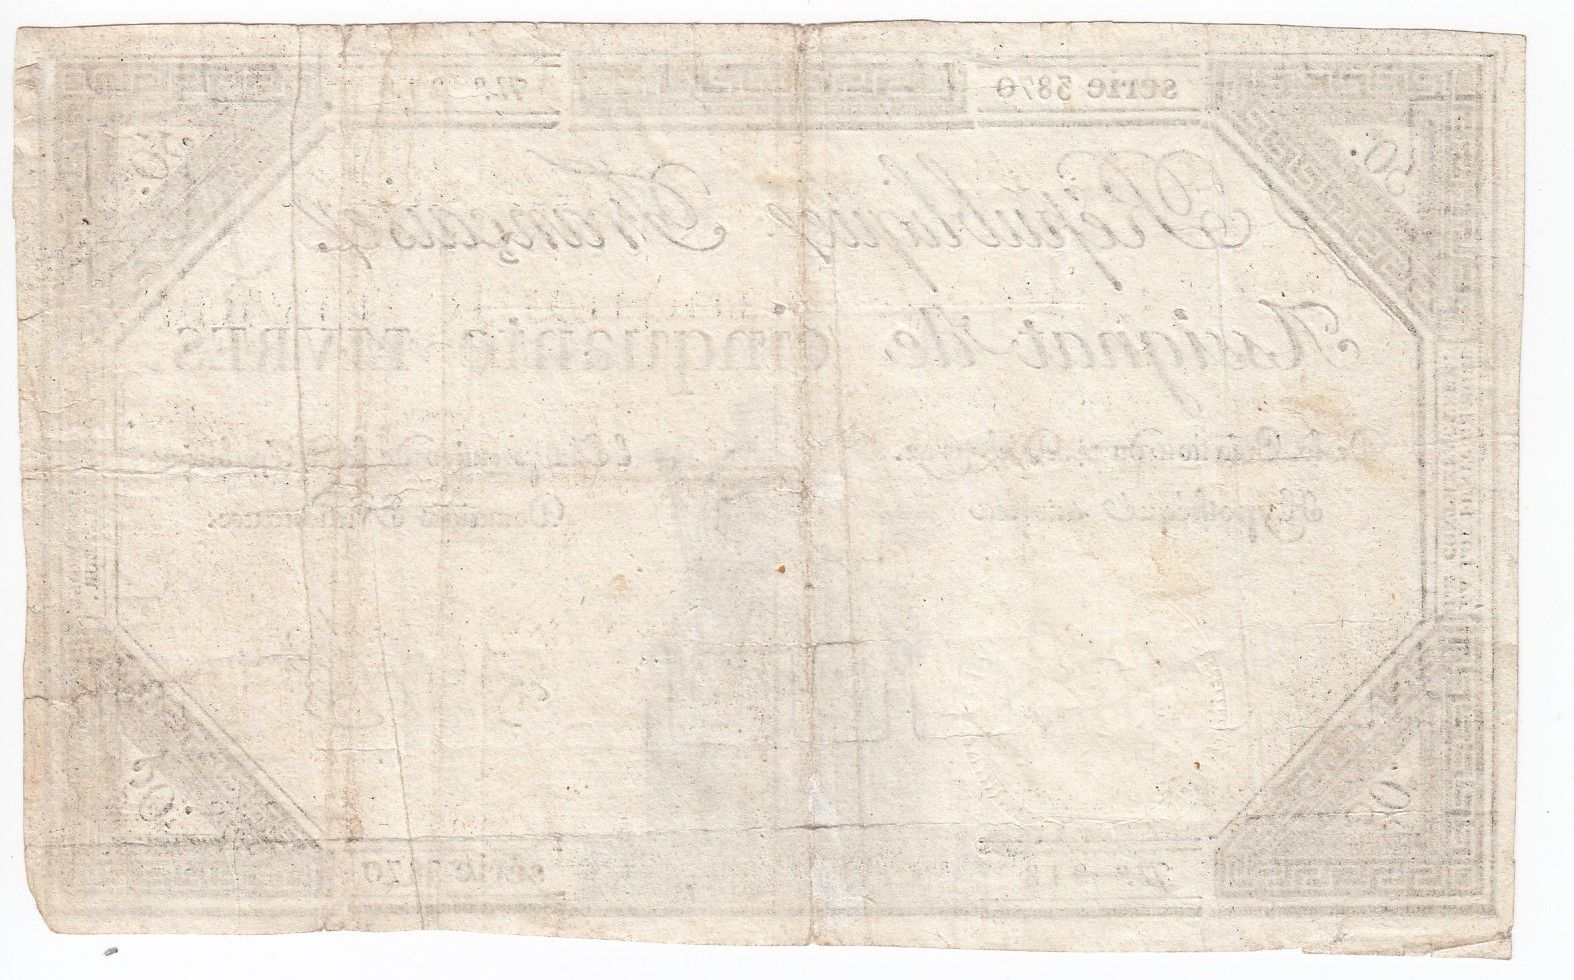 France 50 Livres France seated - 14-12-1792 - Sign. Le Creps - VF